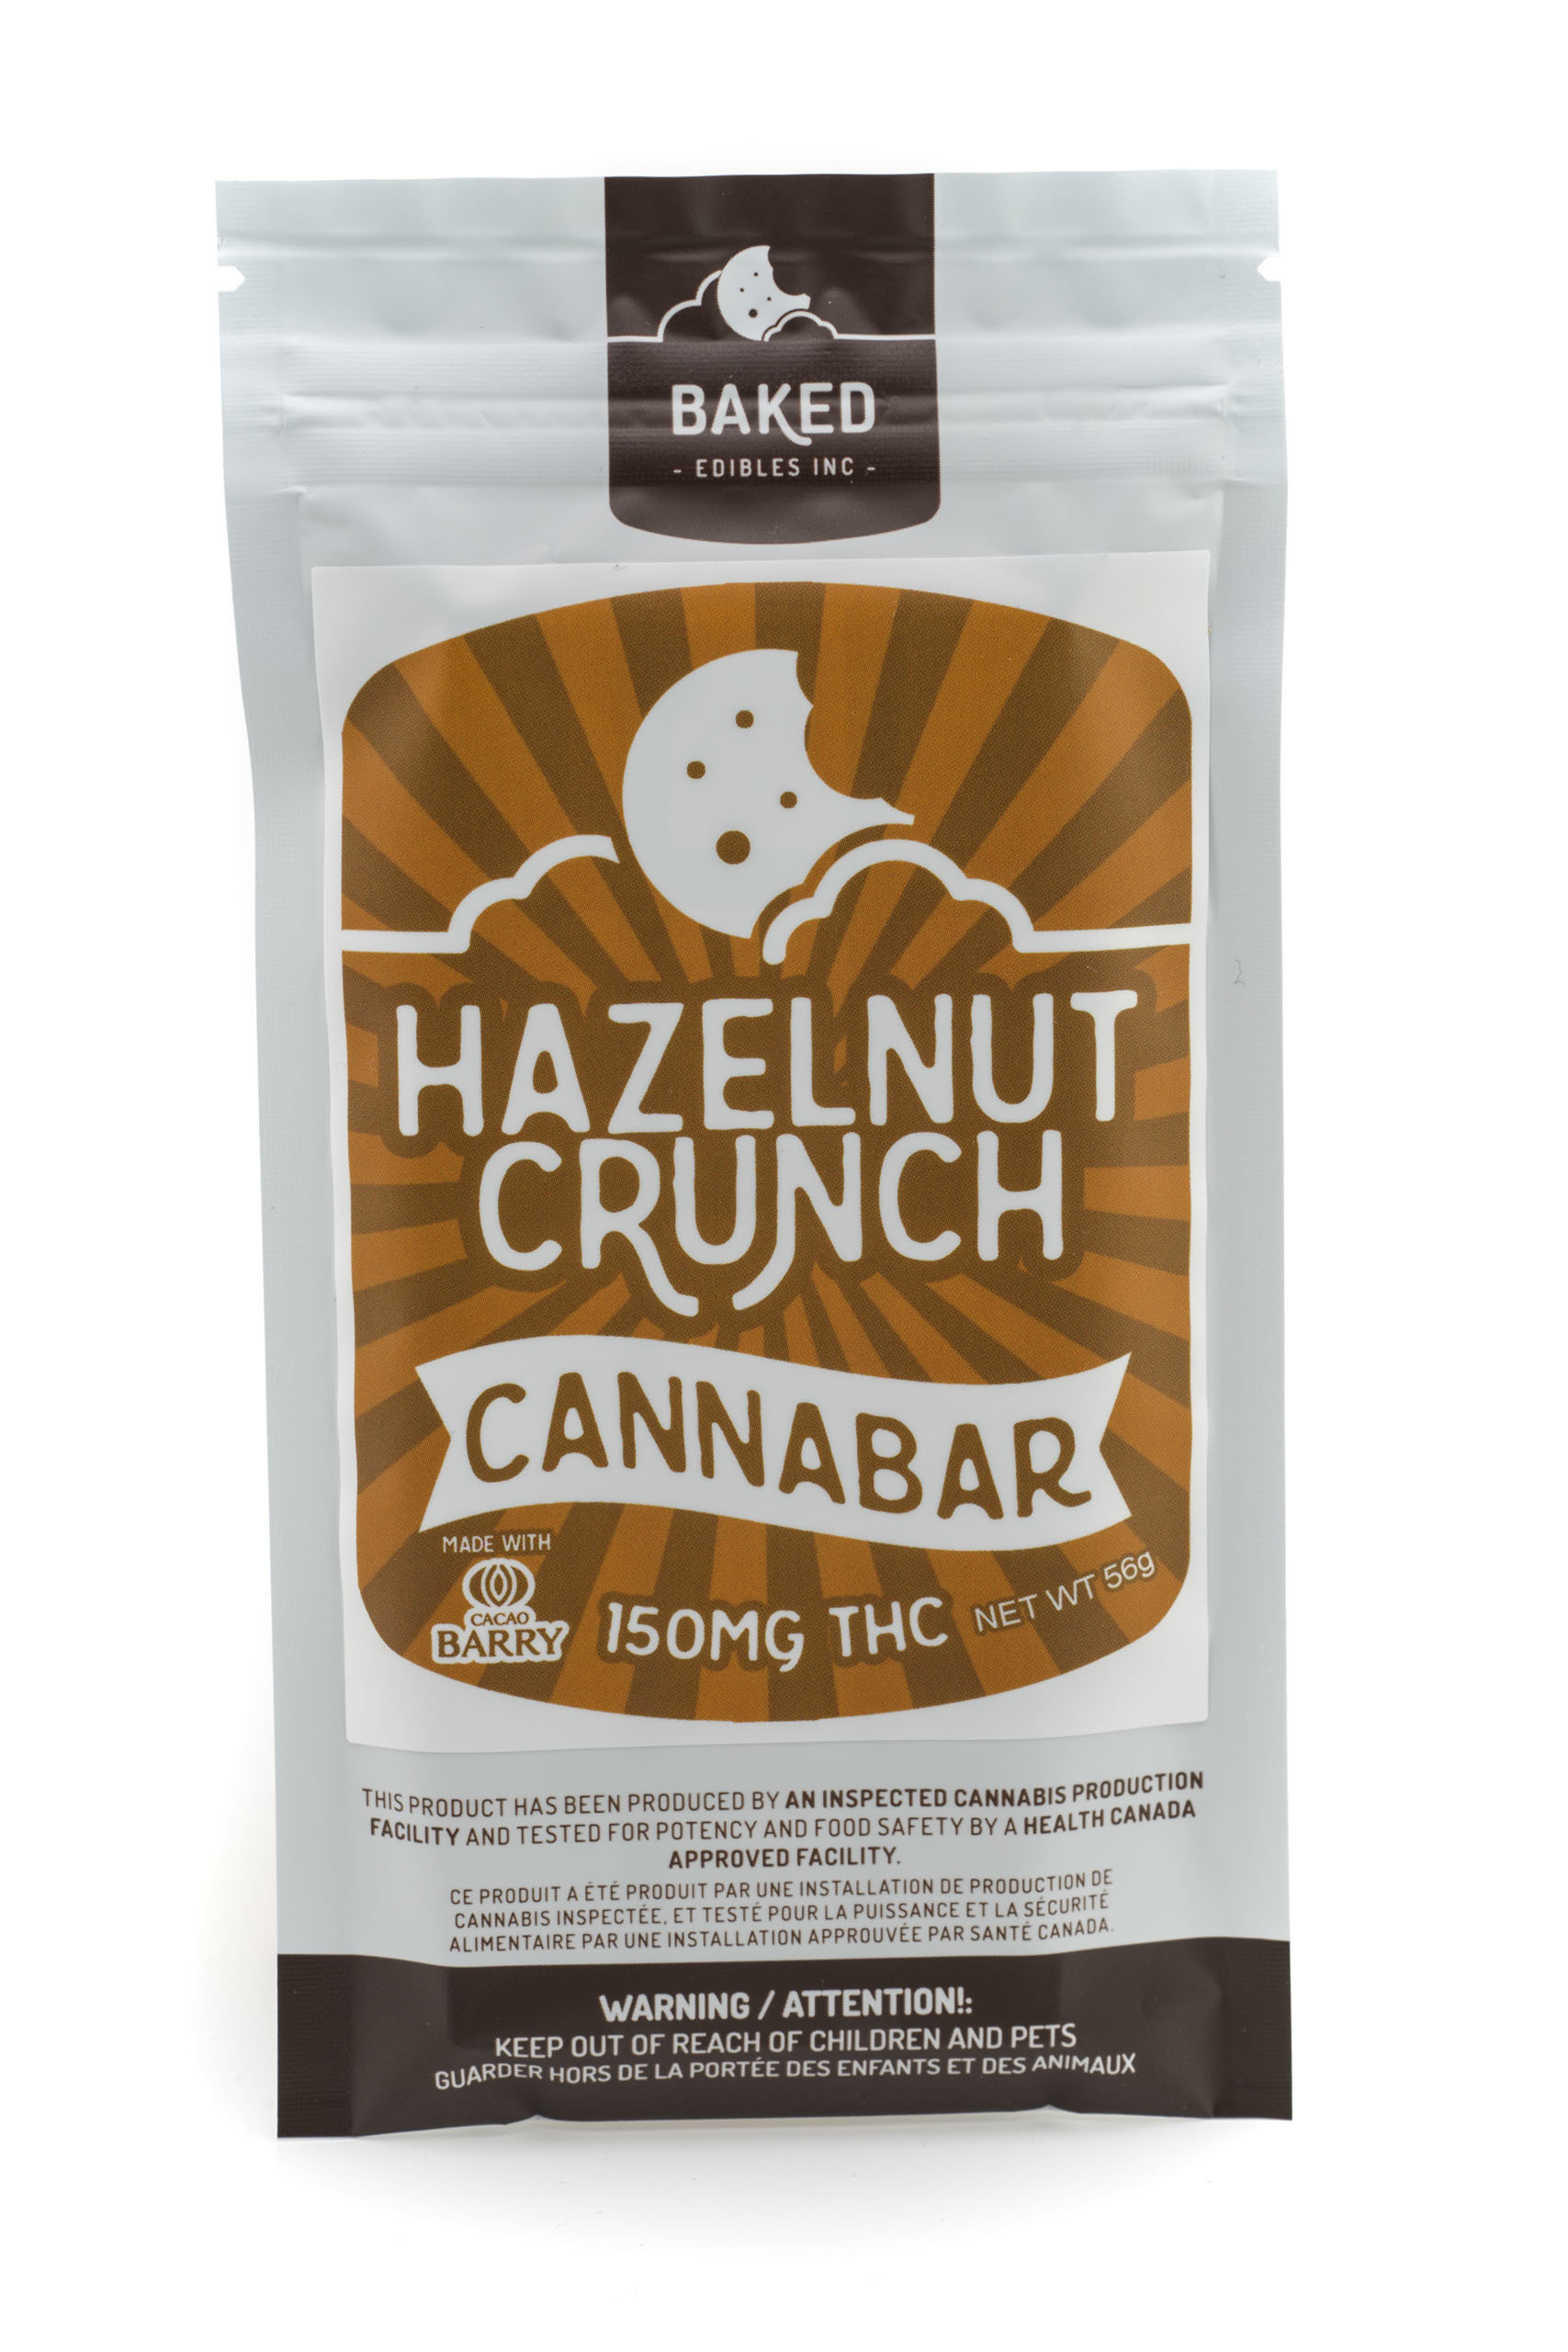 Hazelnut Crunch Cannabar (150mg THC)  by Baked Edibles 00011